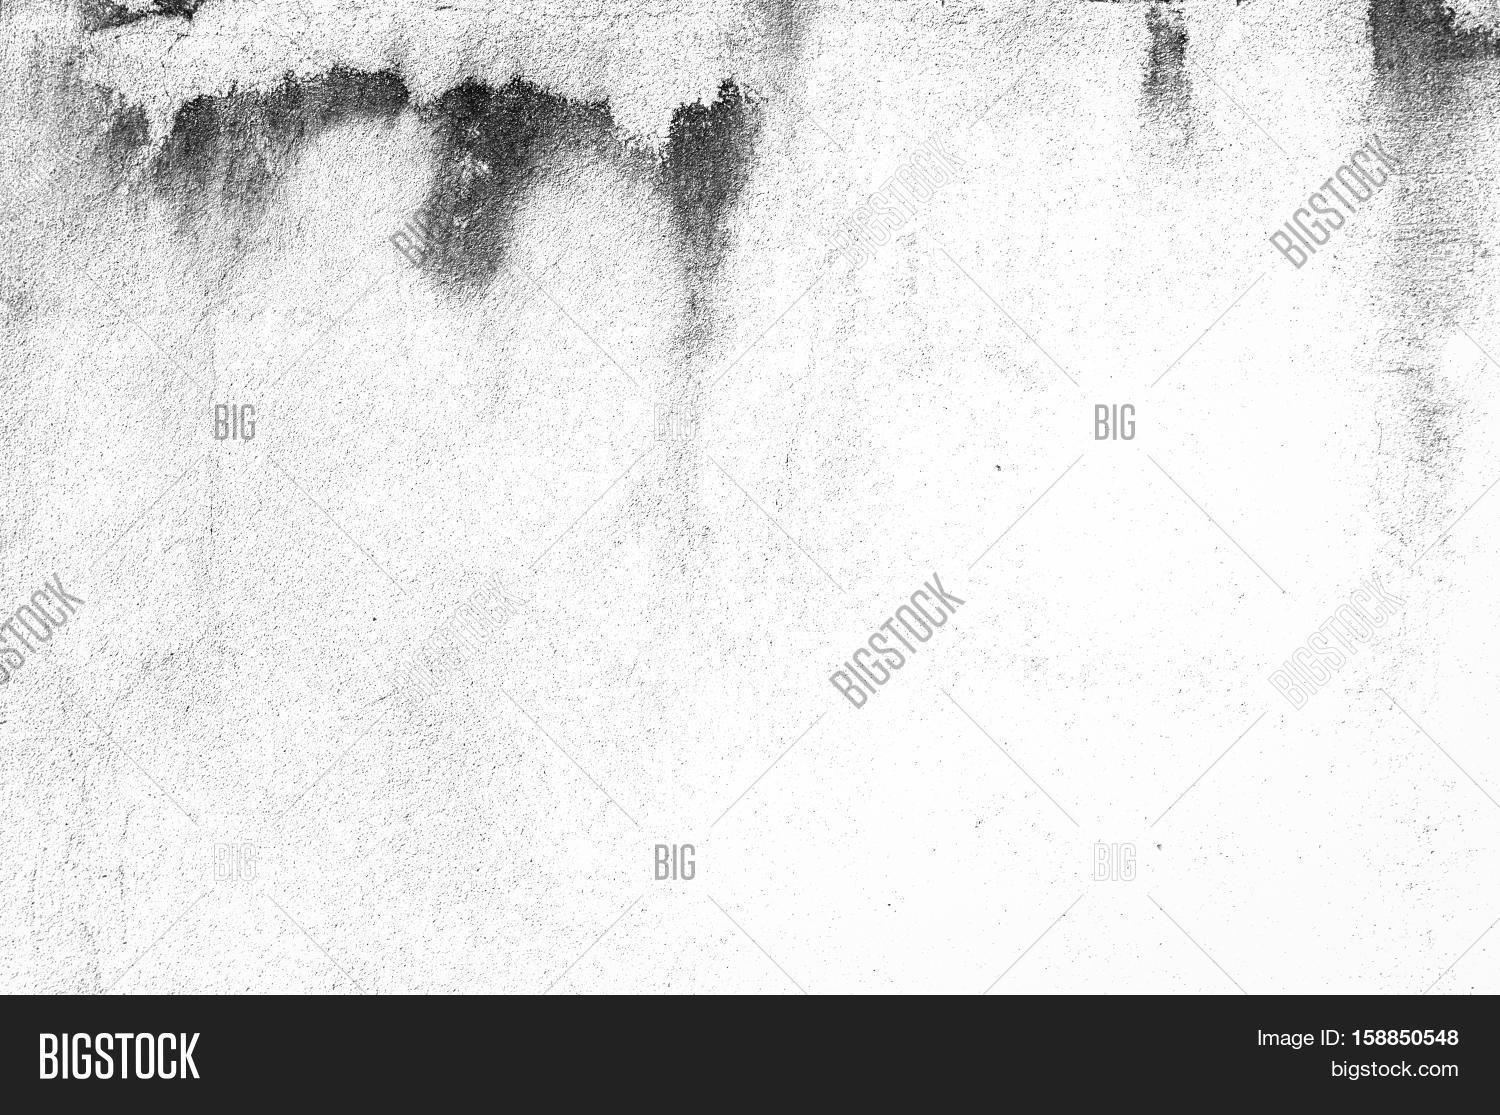 Abstract Grunge Background Dirty Wall Distressed Texture Overlay Effect Black